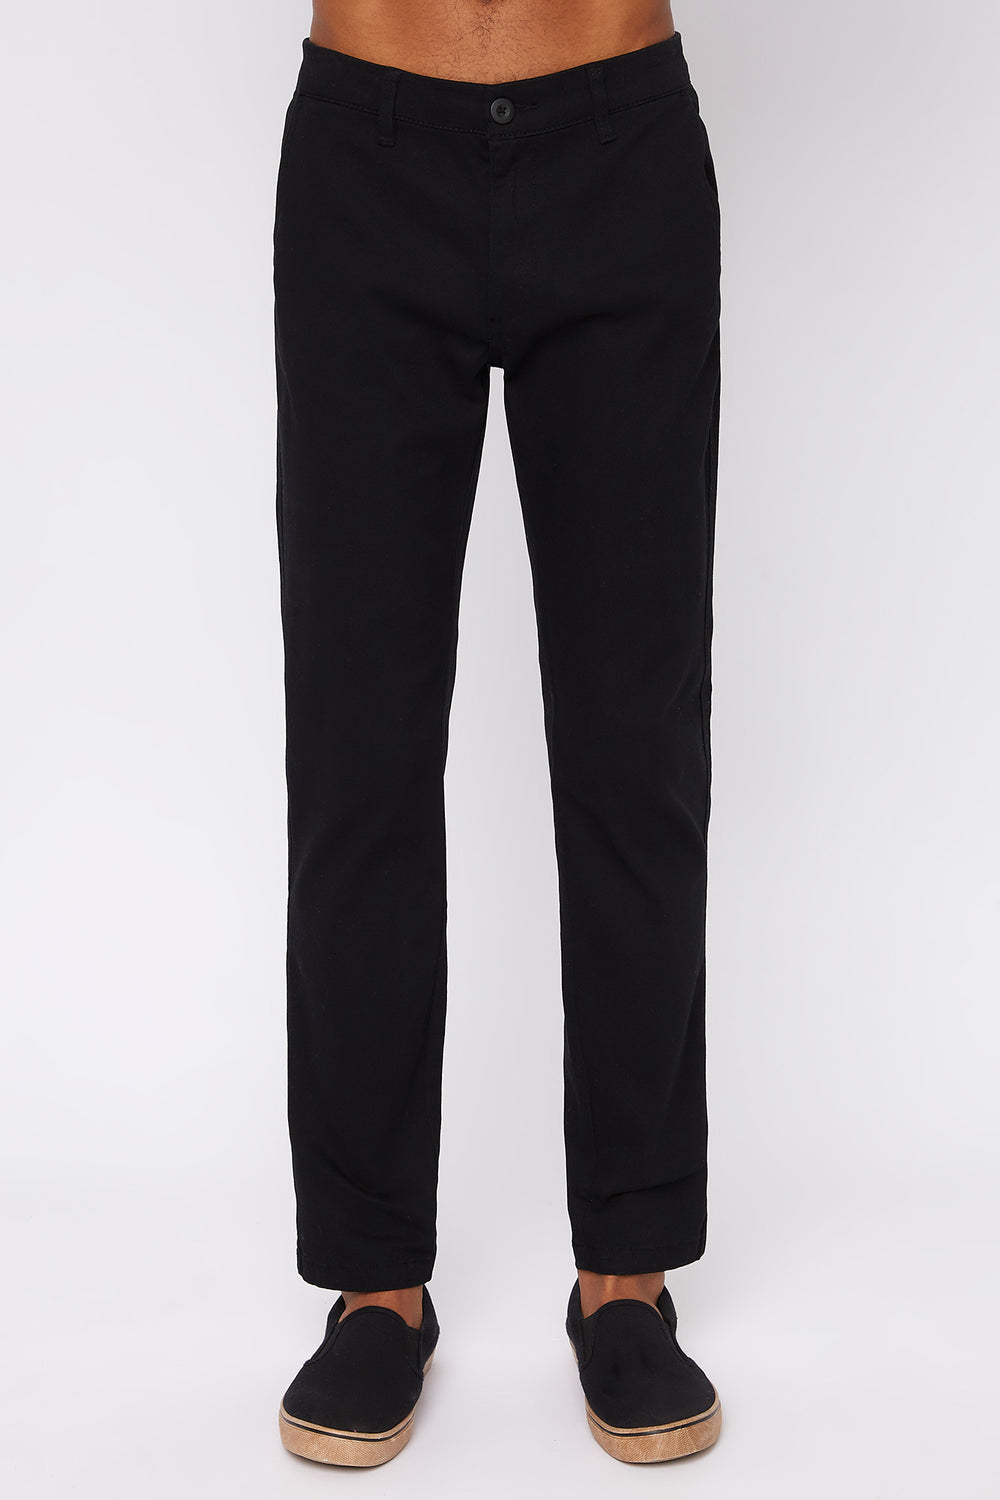 Pantalon Chino West49 Homme Noir